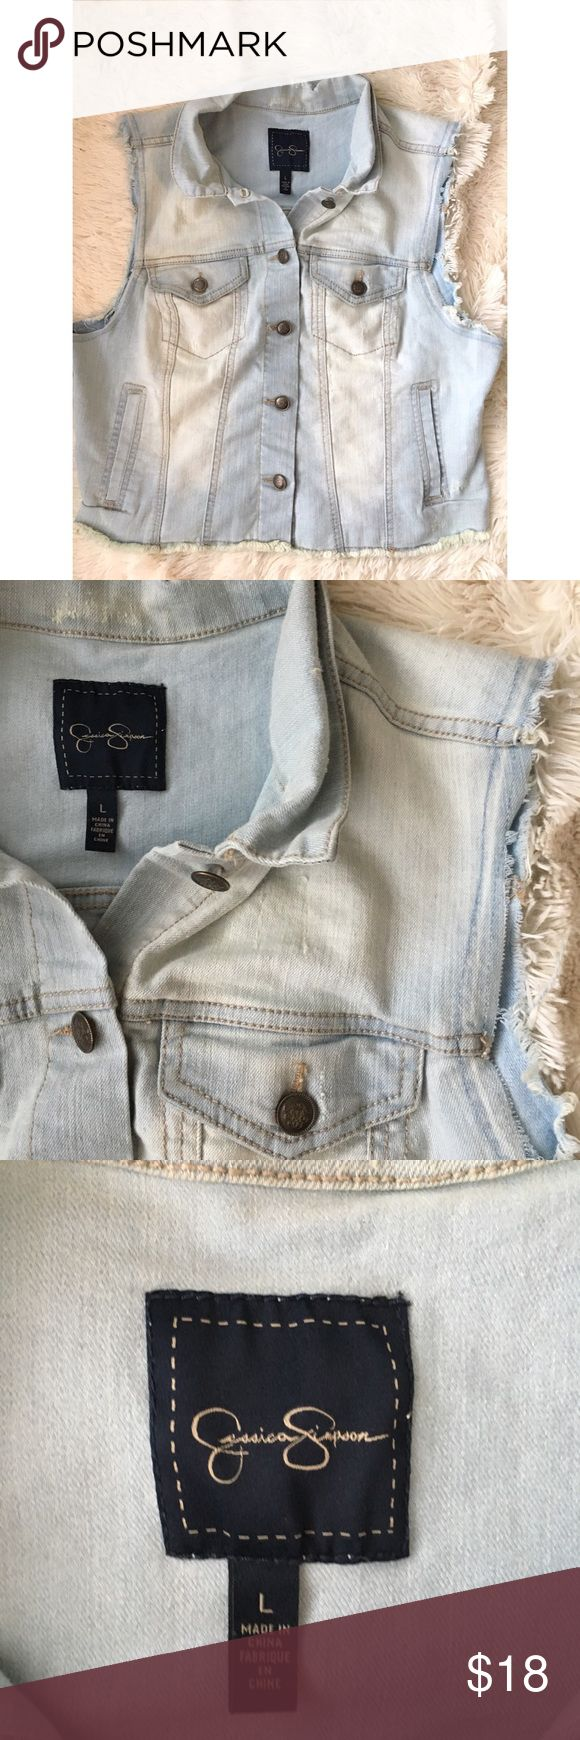 "Jessica Simpson Denim Vest Super cute Jessica Simpson Denim Vest. Lightweight and distressed denim make this great for any season!  Very gently used & good condition.   Size large // Bust 18"" // length 19"" Jessica Simpson Jackets & Coats Vests"